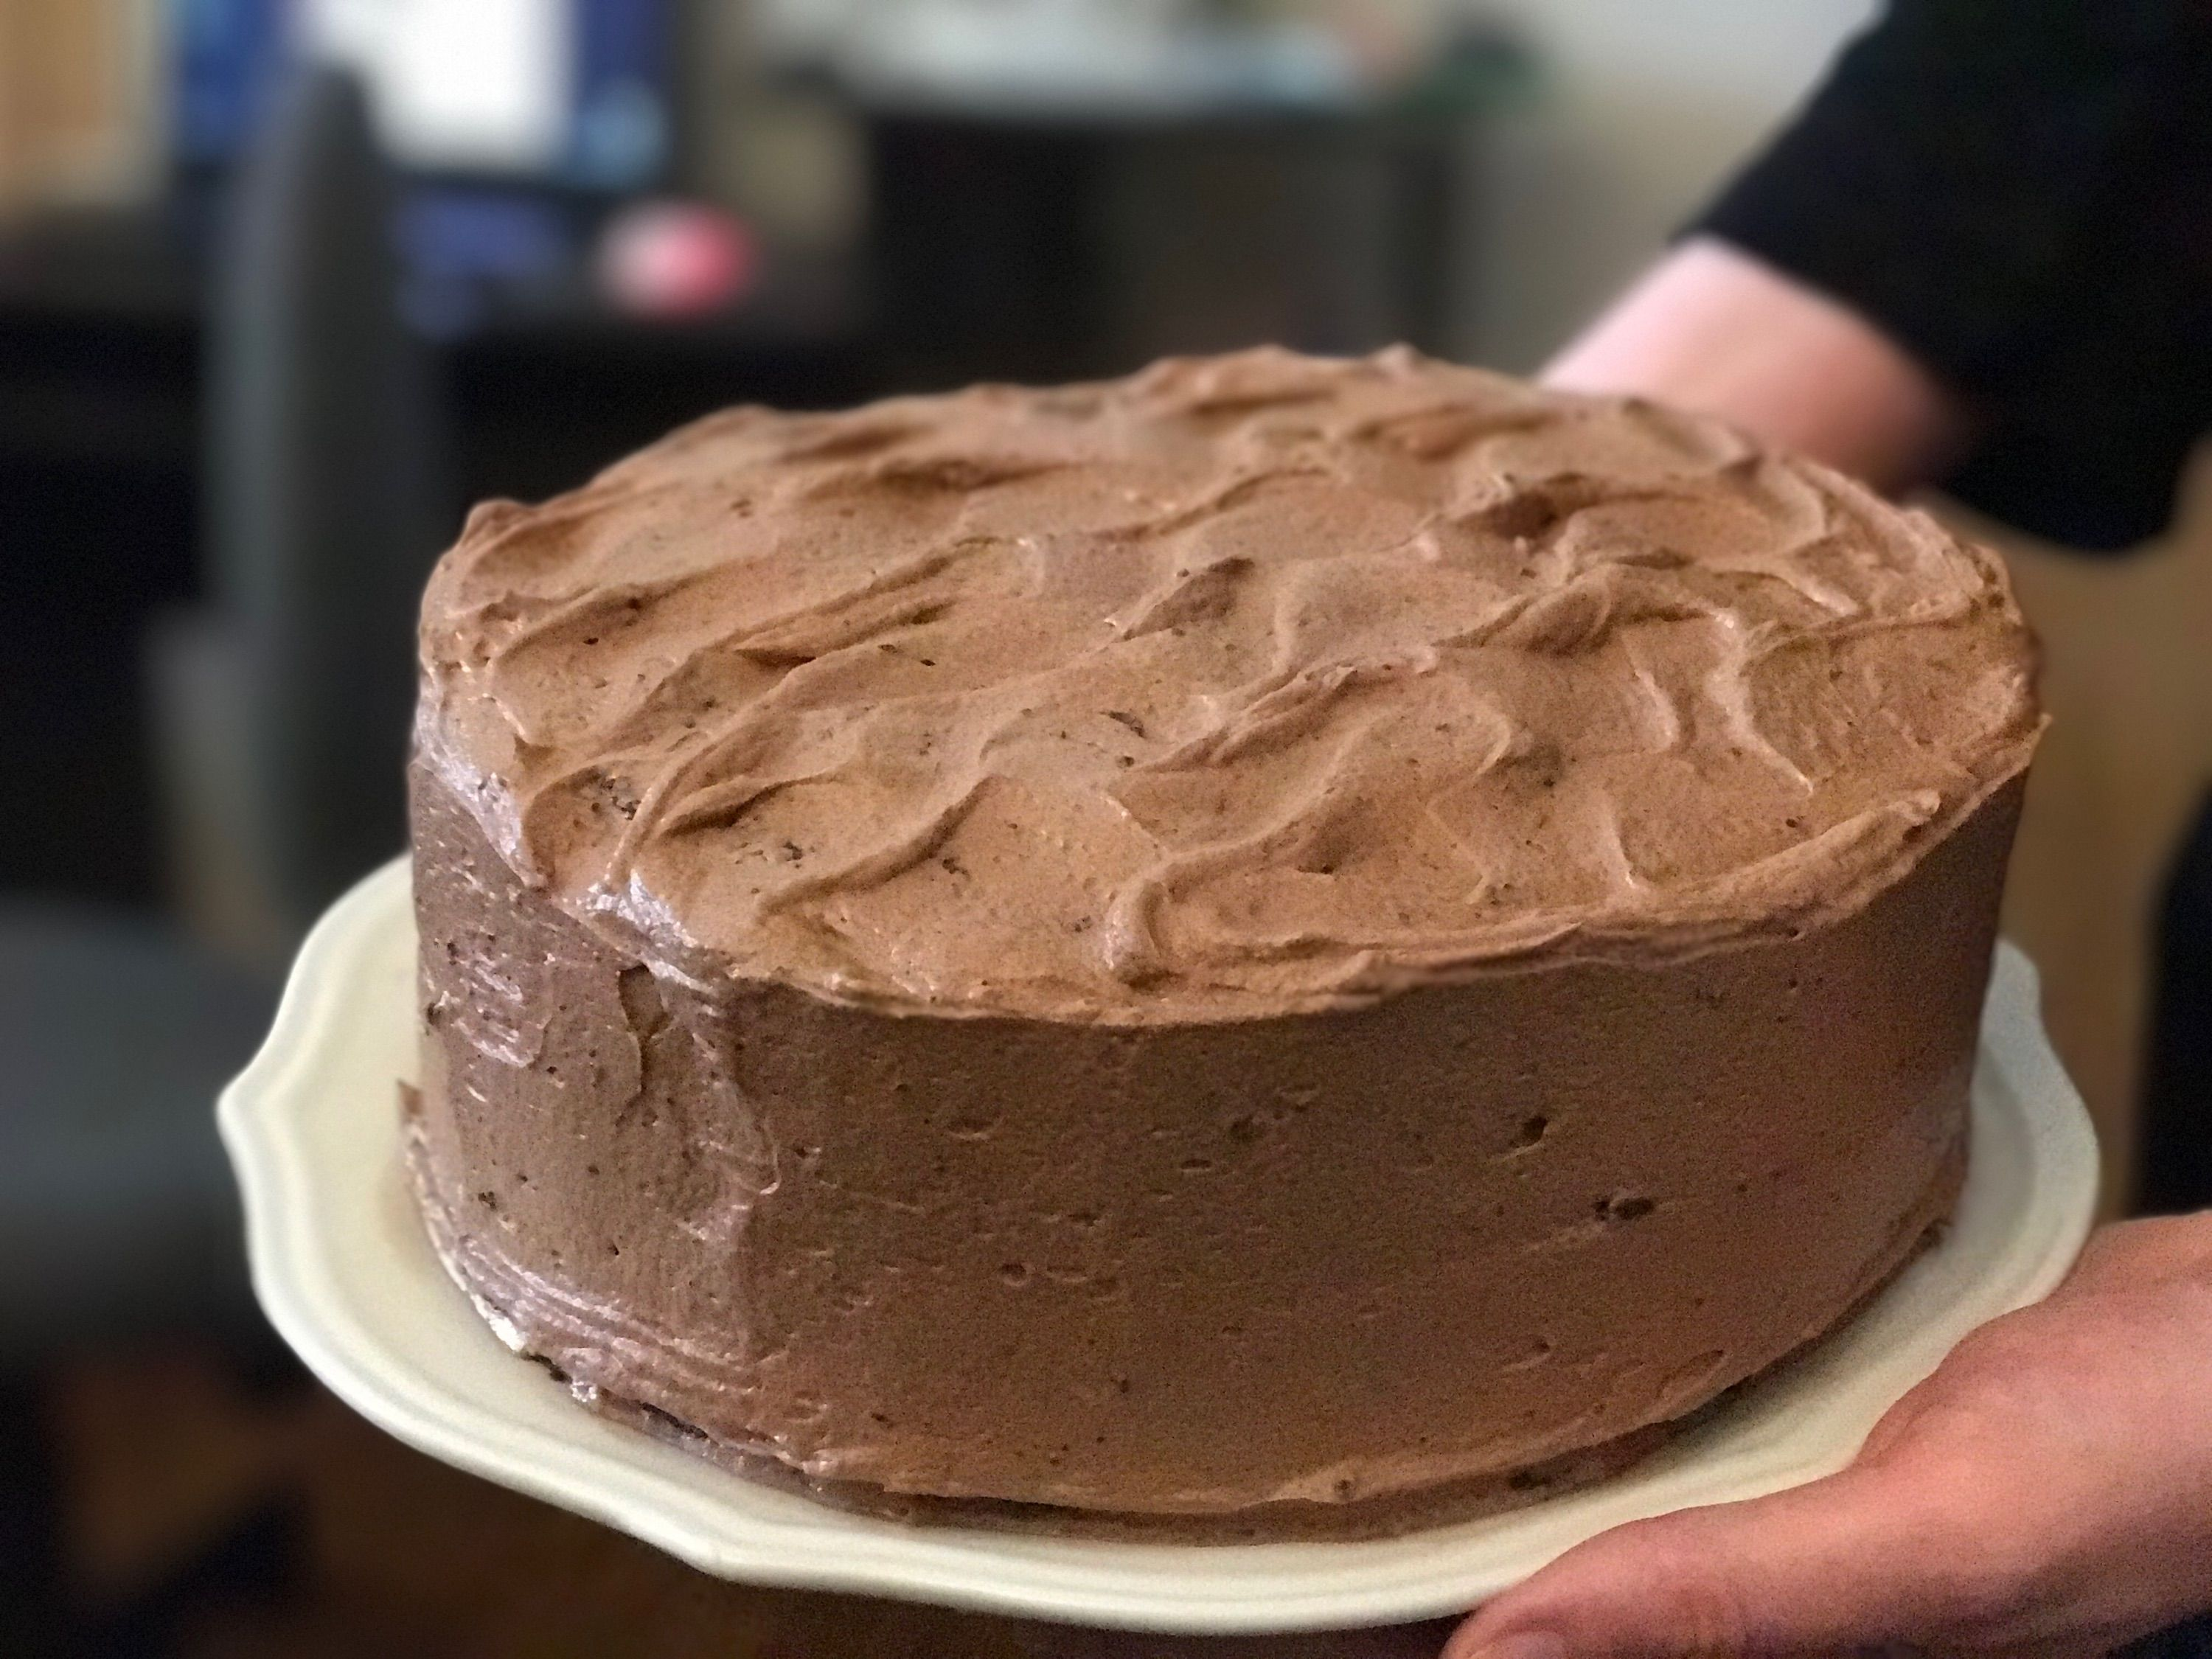 [homemade] Chocolate cake with chocolate frosting and a